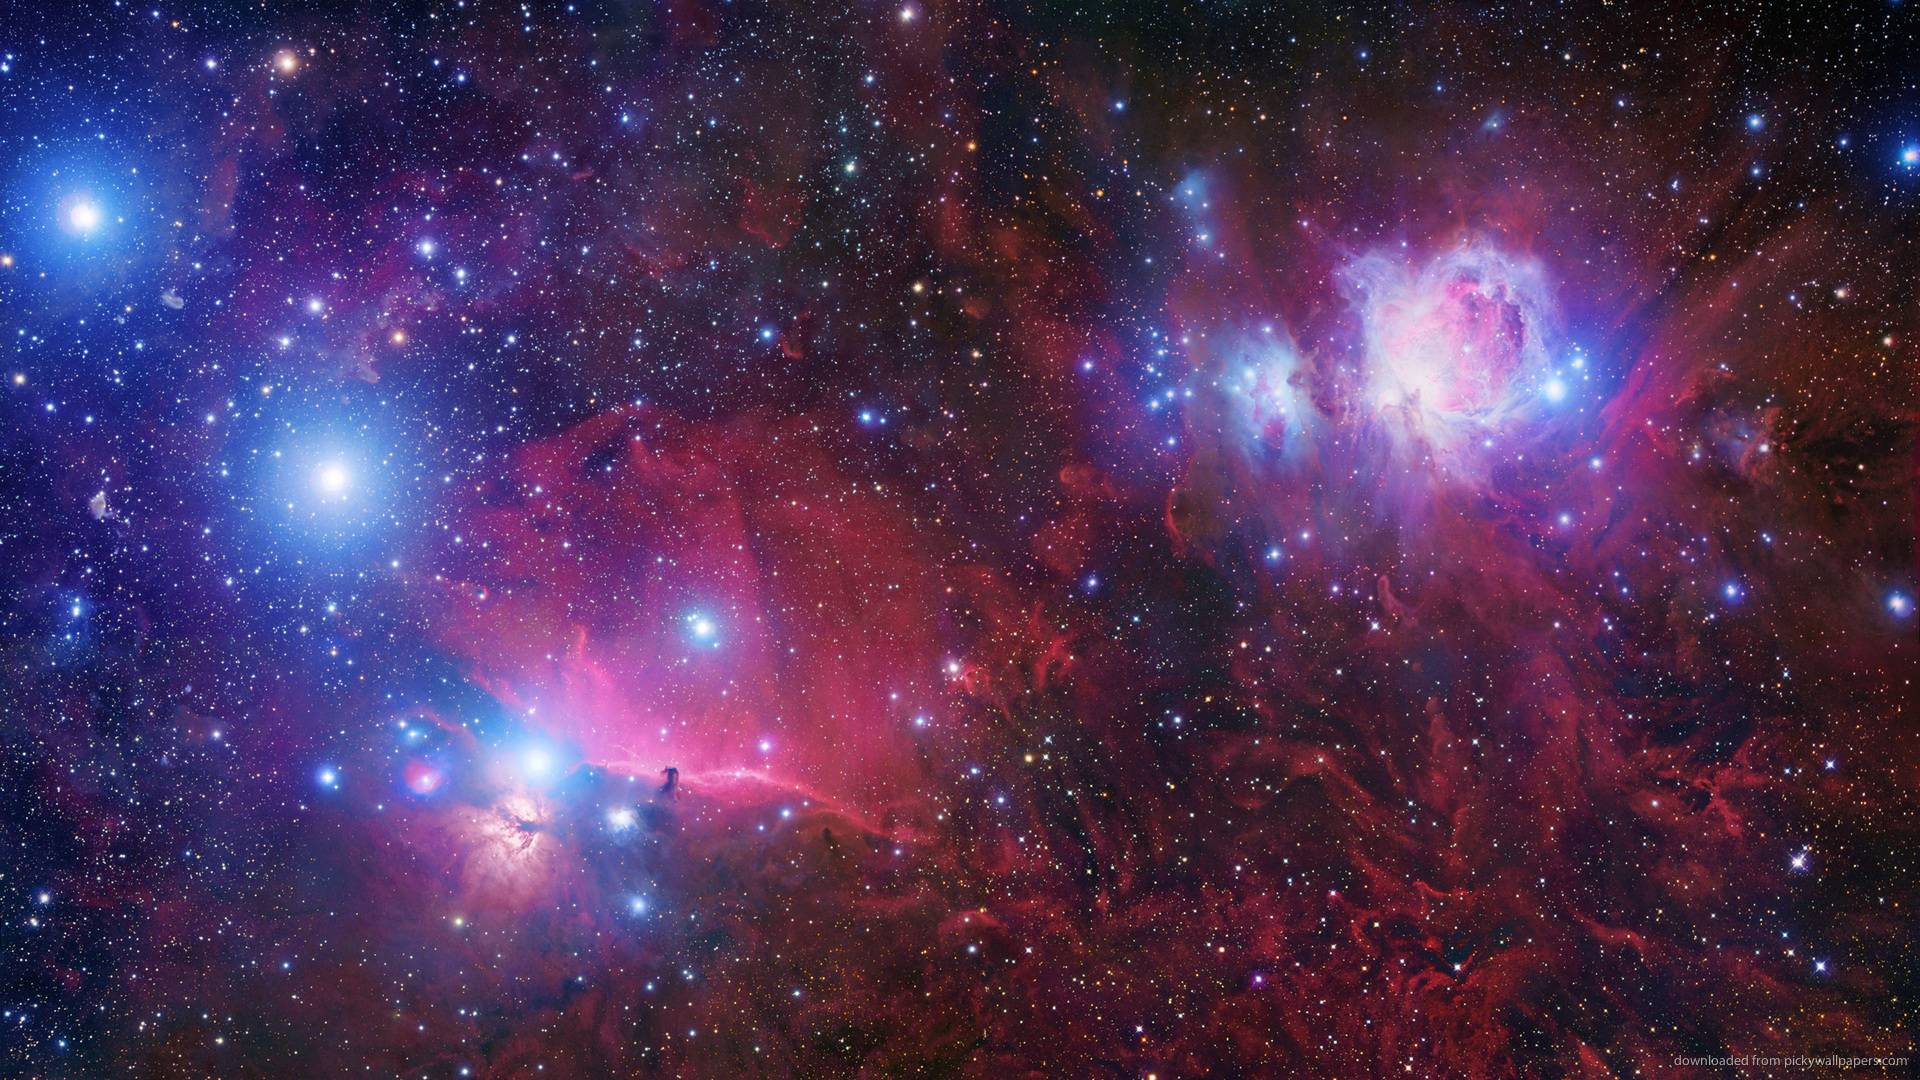 Real Space Wallpapers Photo Cedehm Wallpaper Free Hubble Images Fannone Hd 1920x1080